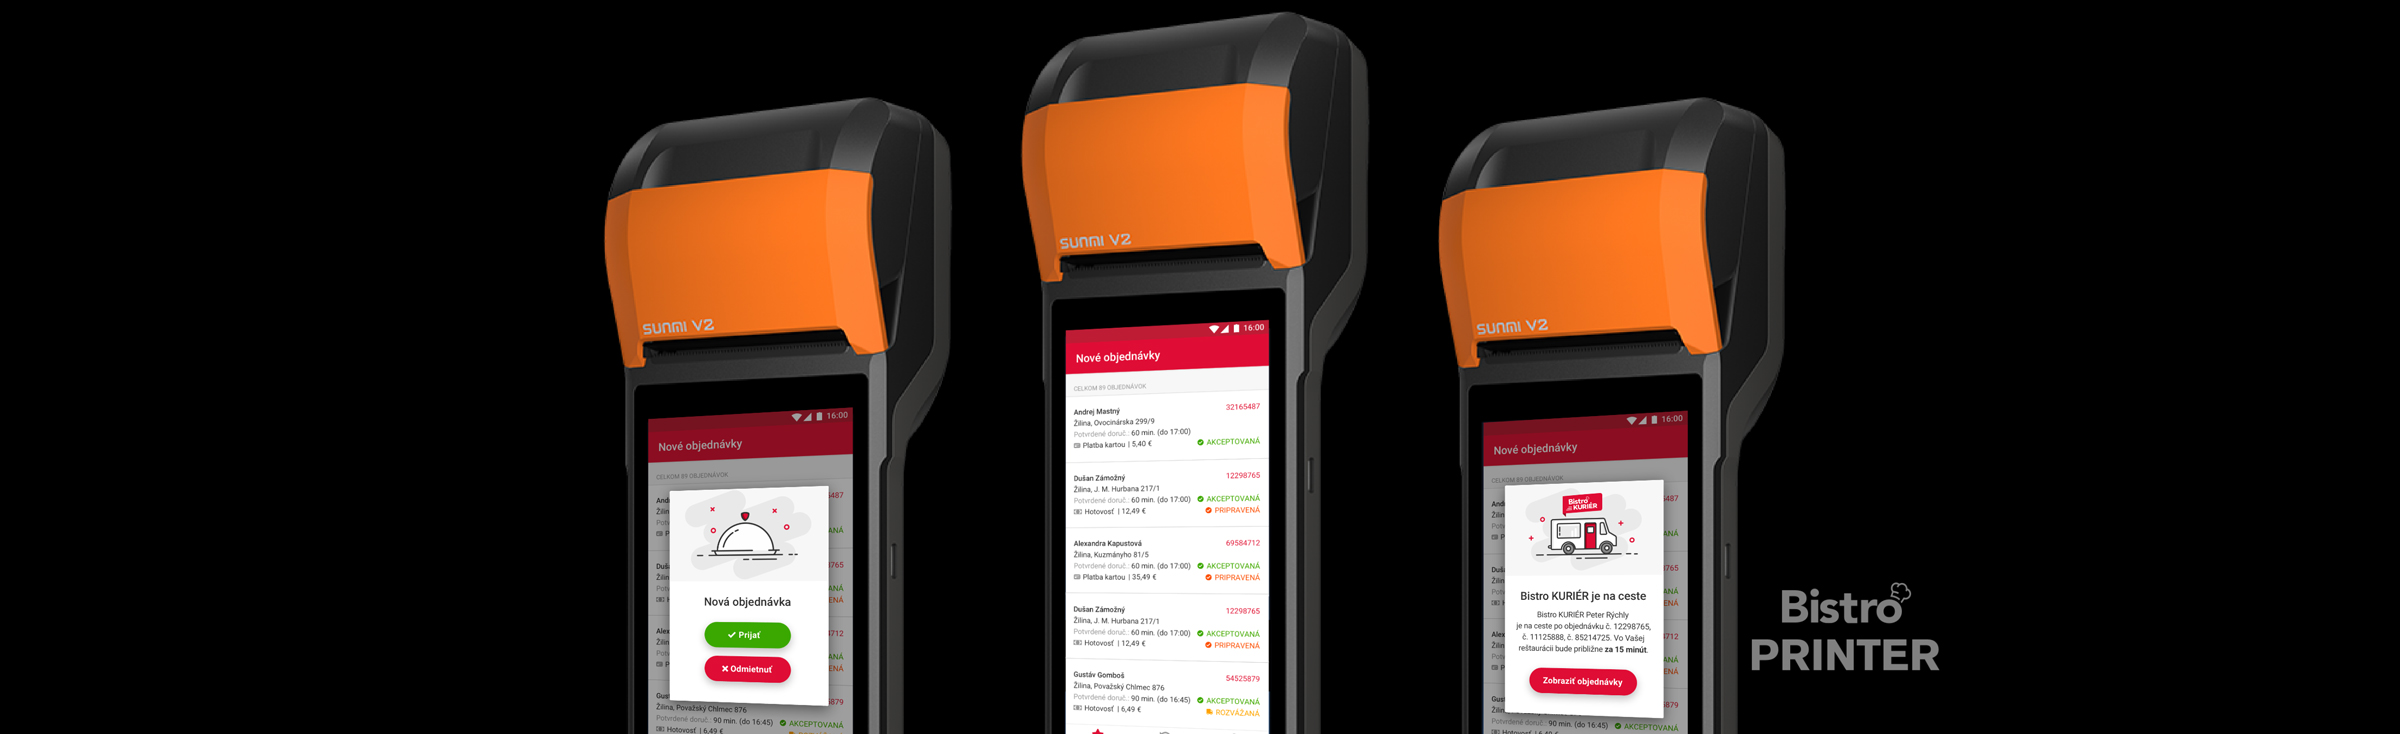 #grpartners: new Android application for Bistro printer